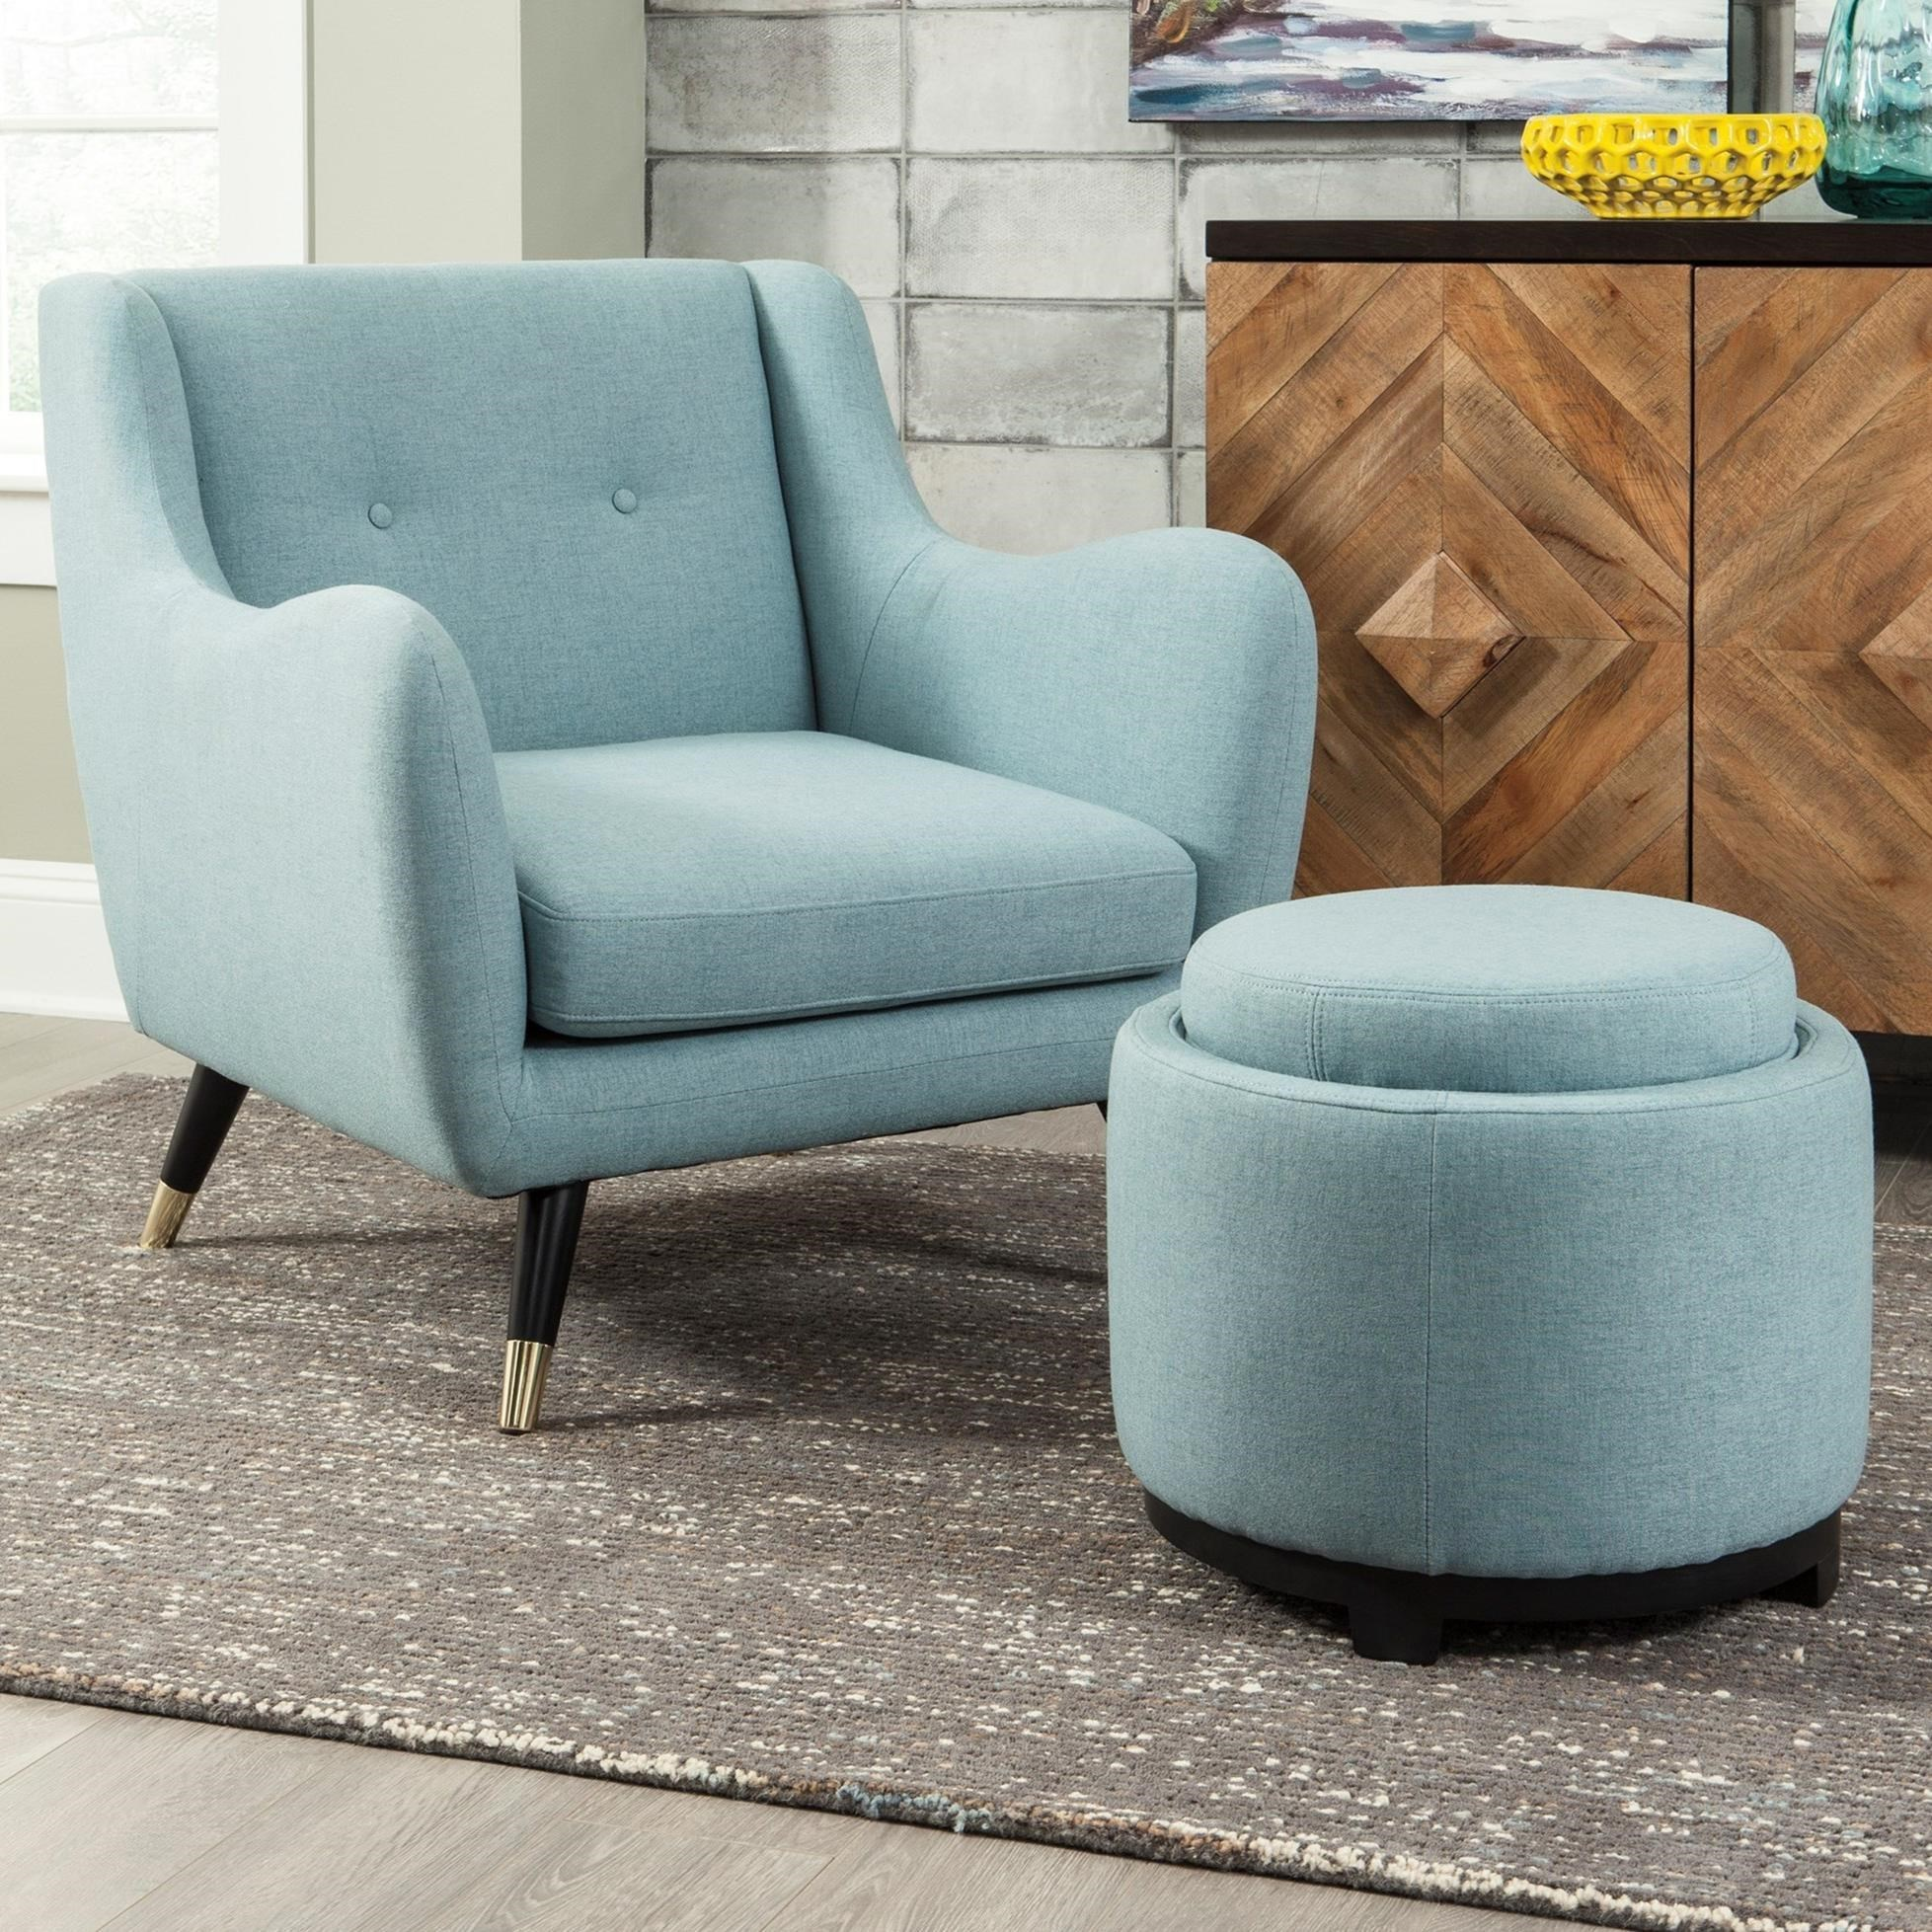 Signature Design By Ashley Menga Mid Century Modern Accent Chair U0026 Ottoman  With Storage/